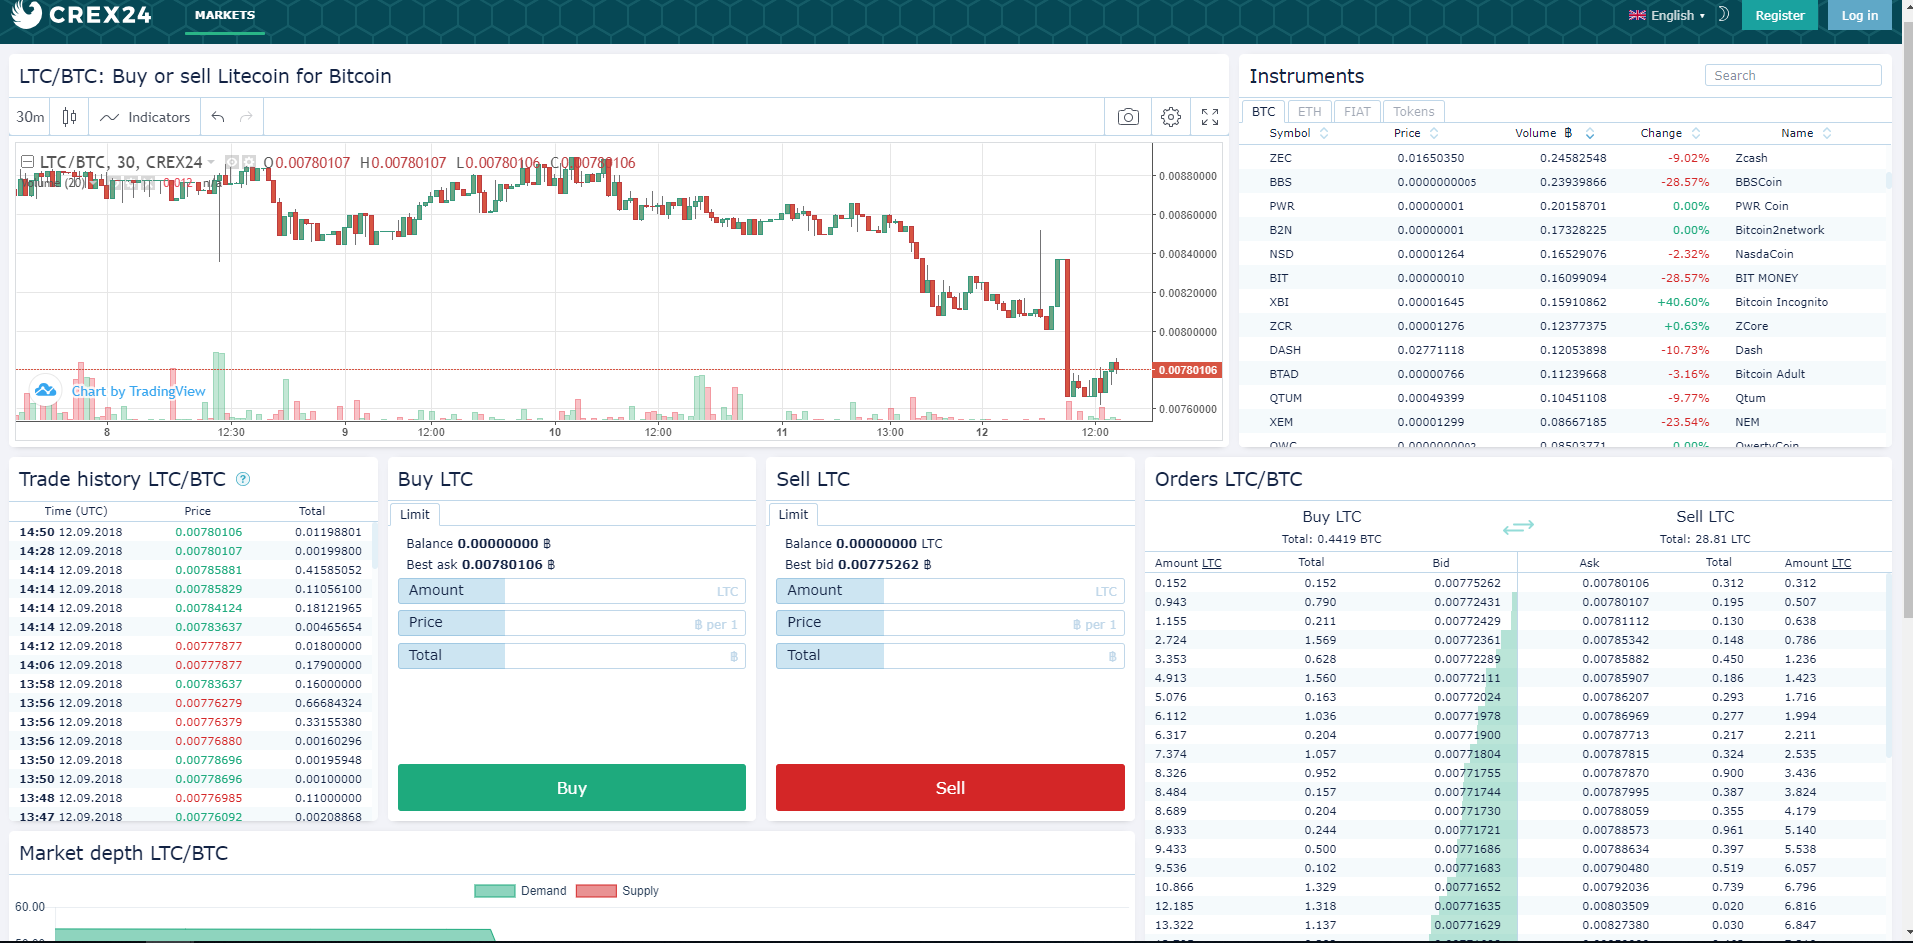 Crex24 Trading View